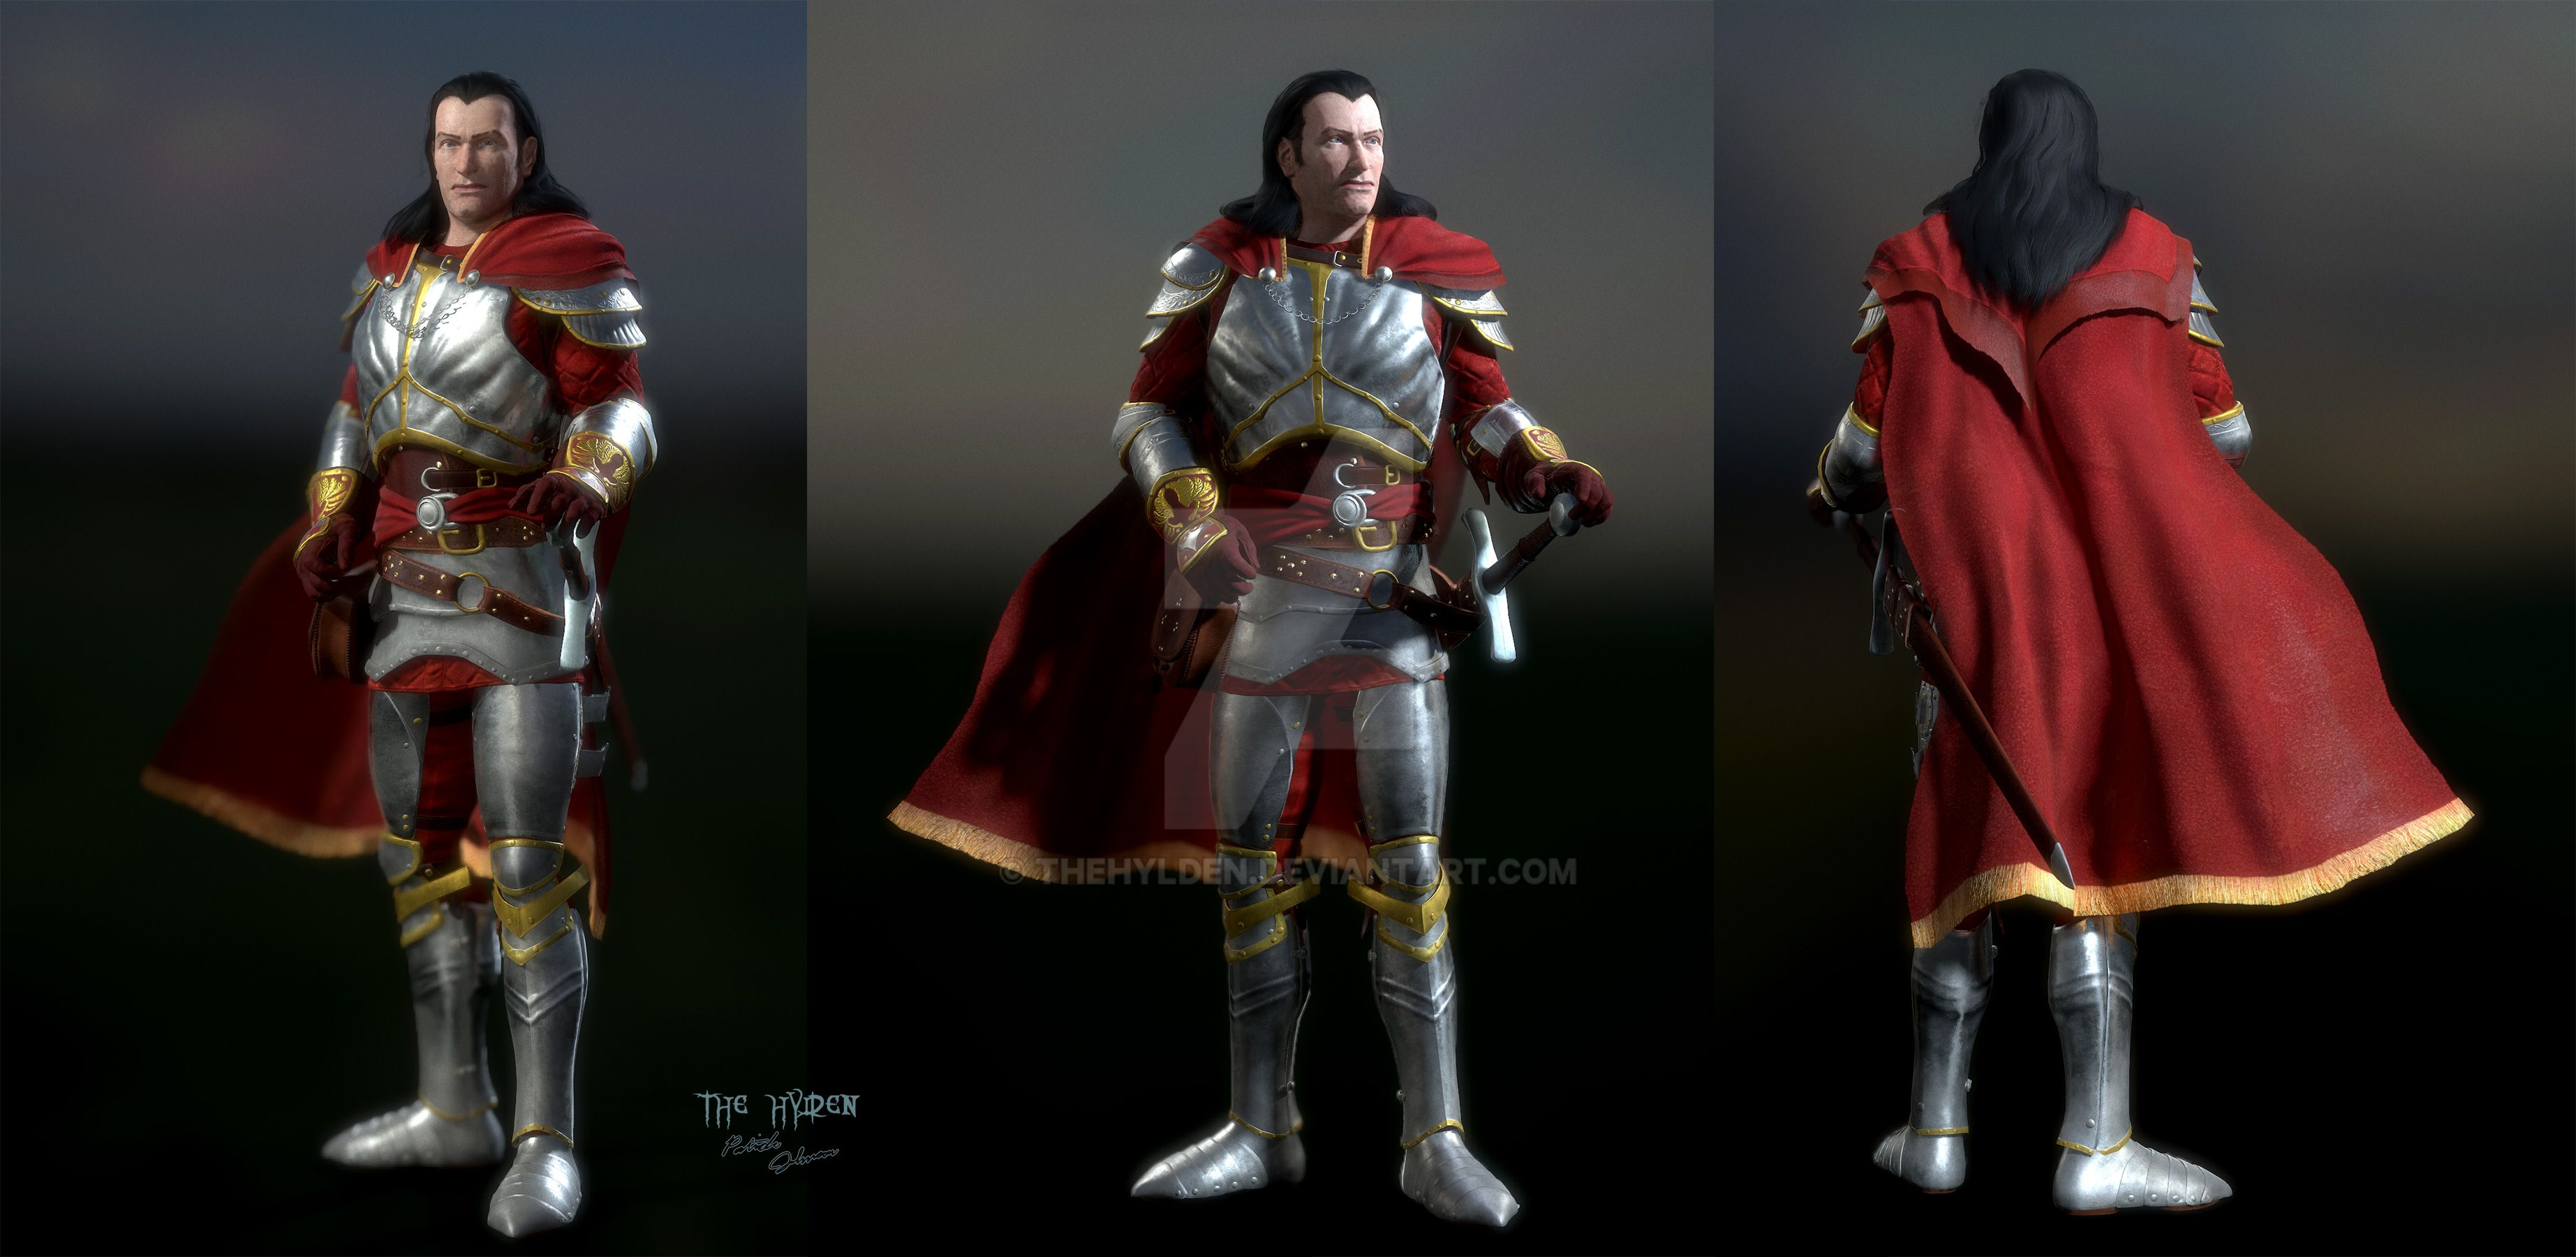 Human Kain: Army Of The Last Hope Armor With Cloak By